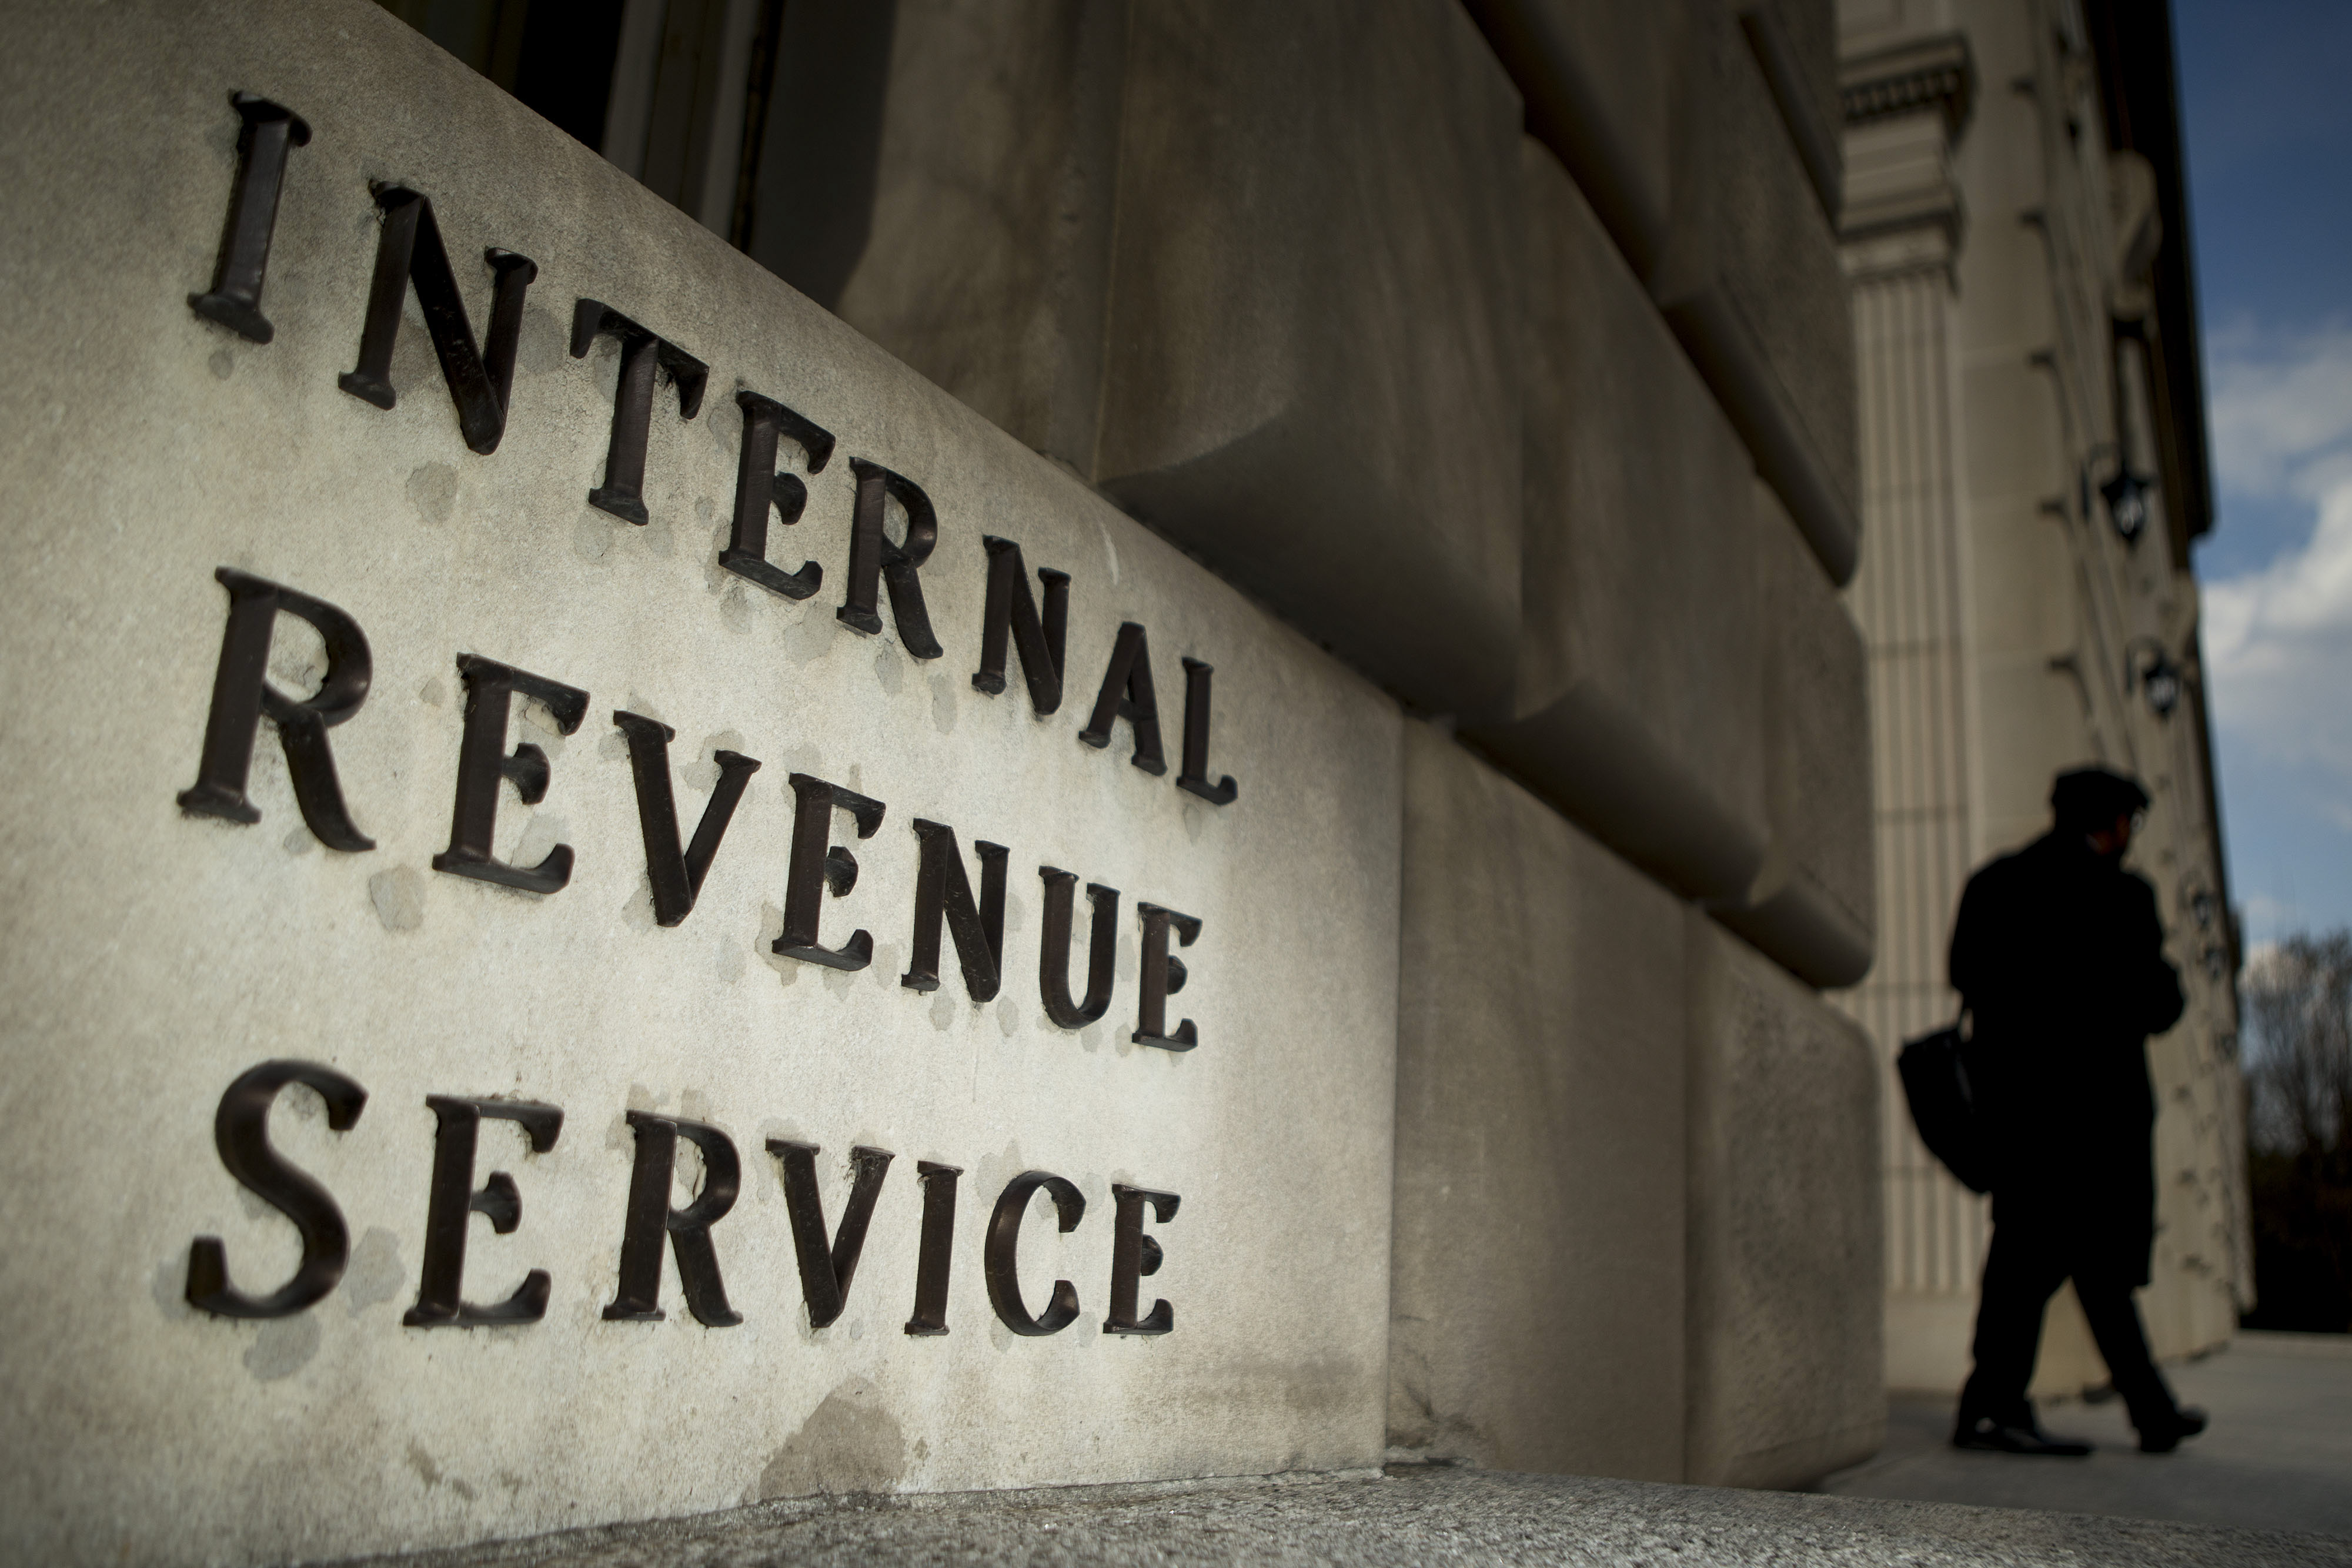 Deadline For Filing 2013 U.S. Taxes April 15